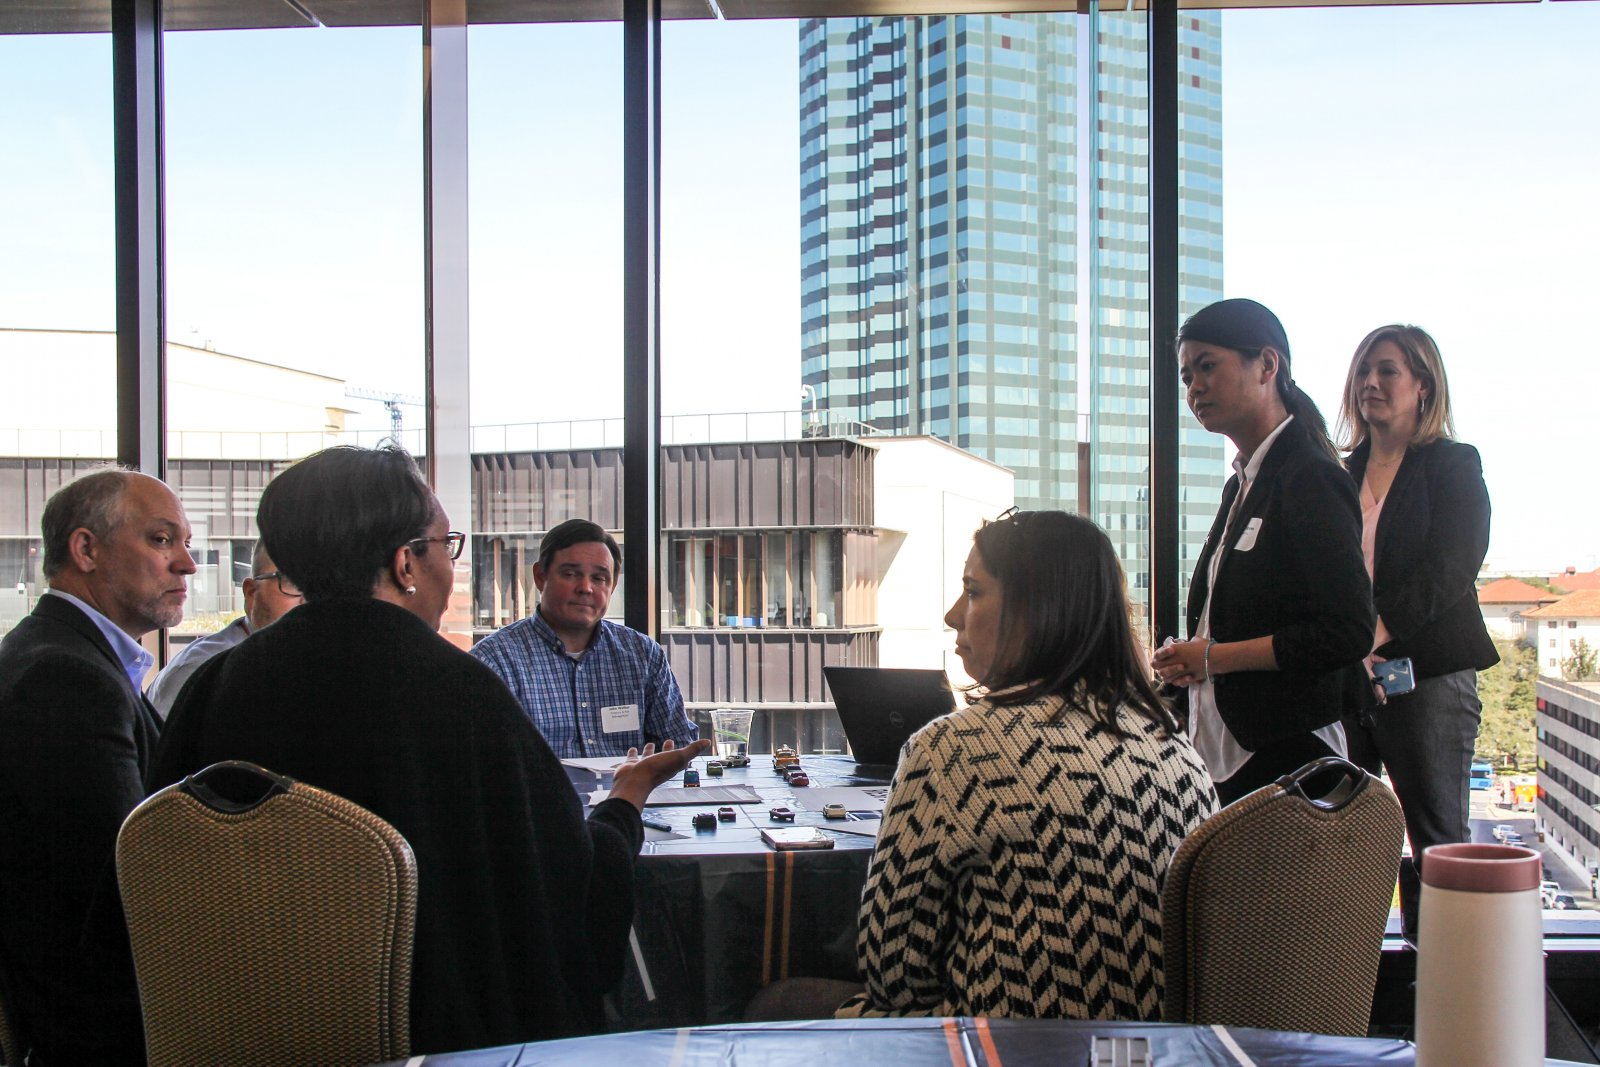 meeting with diverse group of UT Austin leaders, Austin city skyline in background